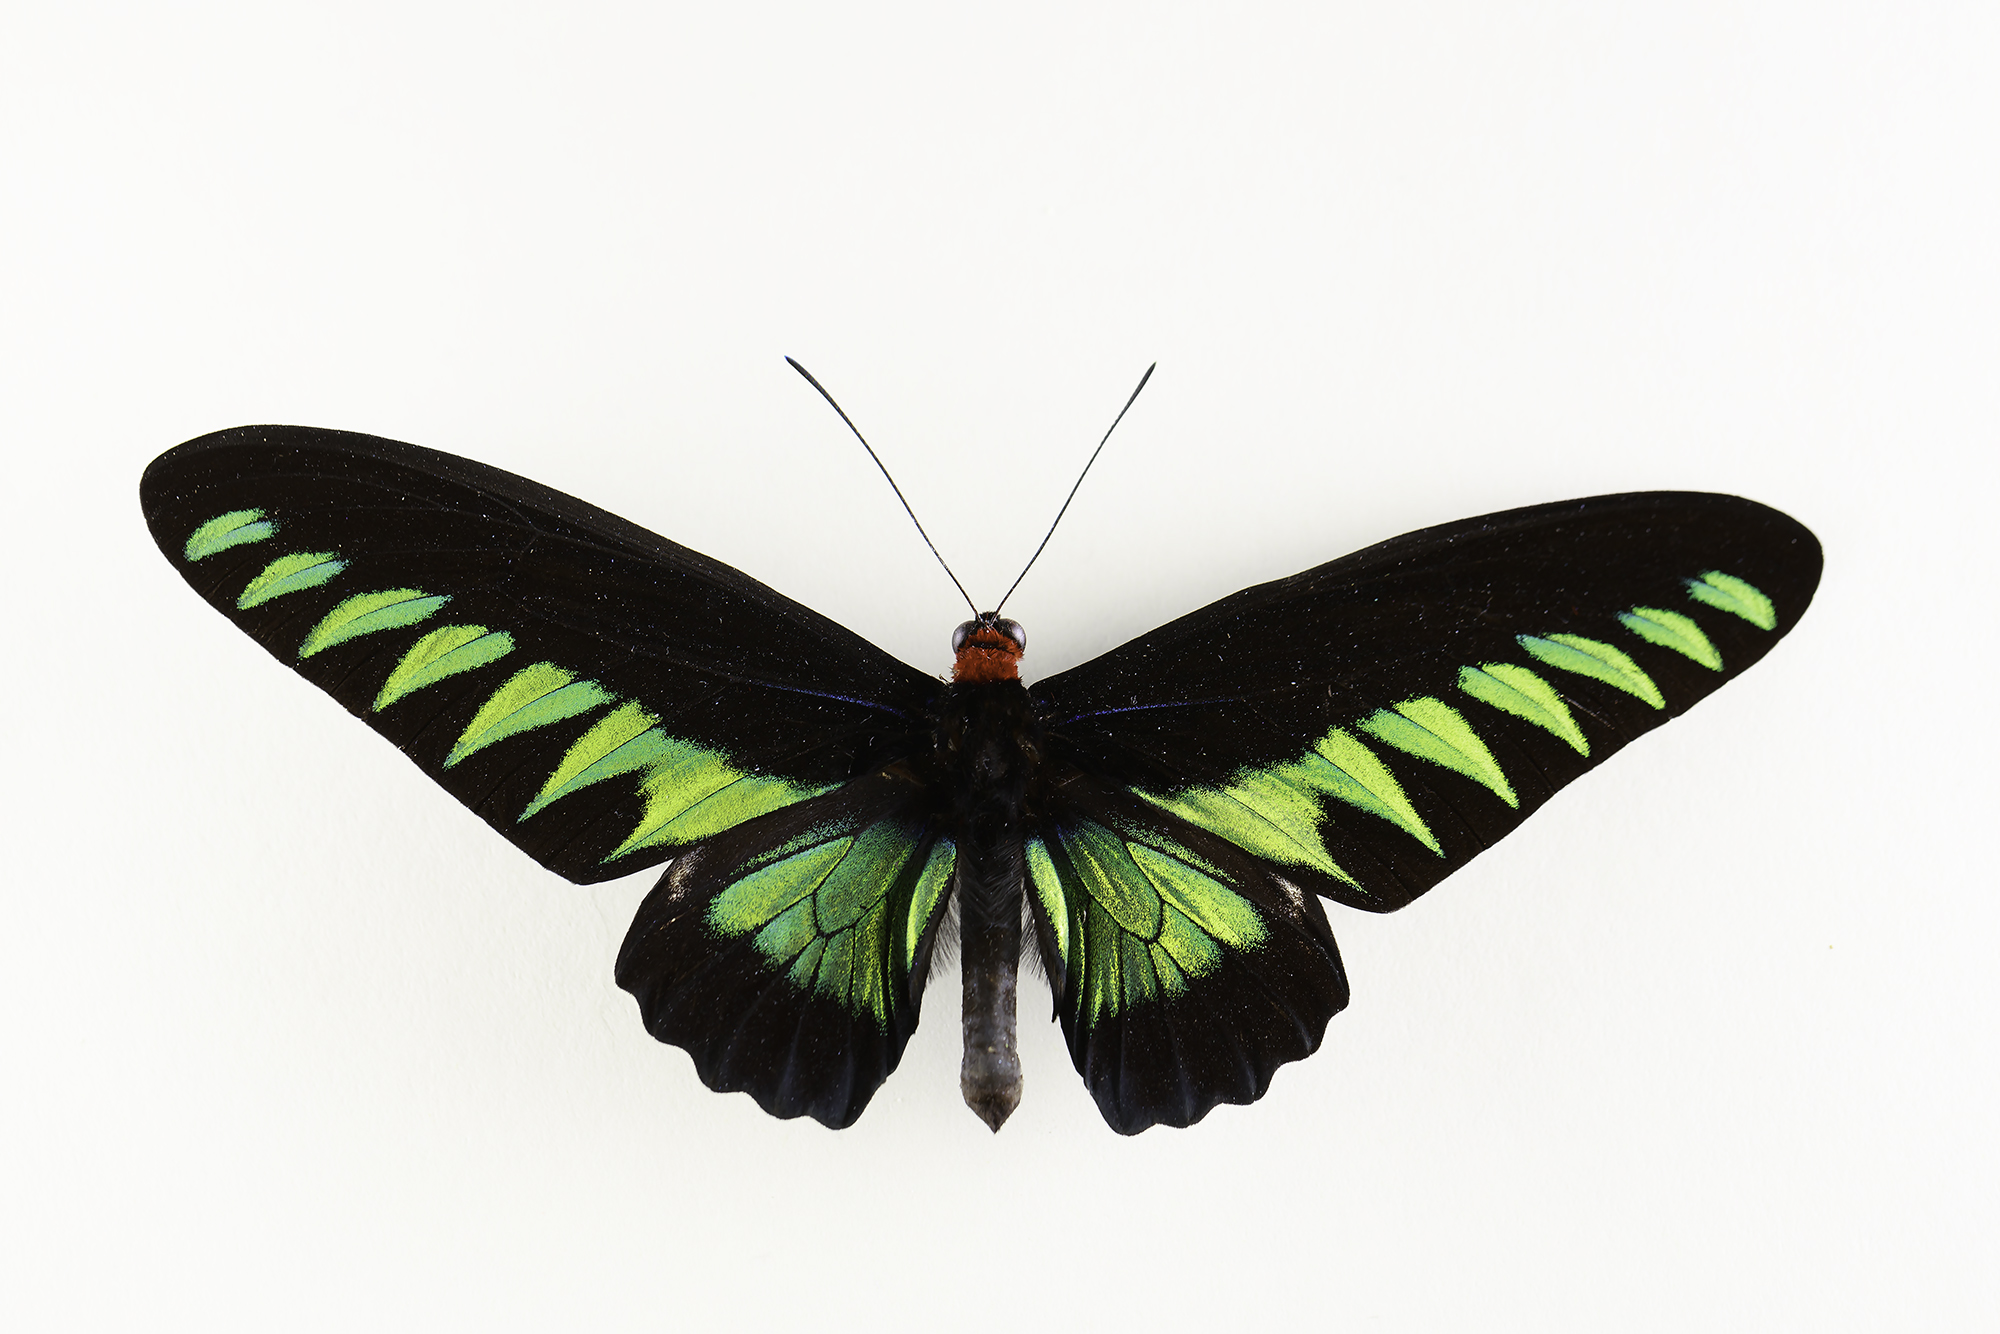 """Trogonoptera brookiana -  Rajah Brooke's birdwing   This is a male birdwing butterfly from the rainforests of the Thai-Malay Peninsula,Borneo,Natuna.  The magnificent Rajah Brooke's Birdwing was discovered on Borneo in 1855 by the legendary explorer and naturalist Alfred Russell Wallace. It is widely distributed throughout Borneo, Sumatra, Palawan and the central states of West Malaysia, and in a few areas is very abundant, but populations are quite localised. It also occurs as a scarce species in Thailand.  Sadly the butterflies are killed in vast numbers, mainly by Orang Asli children, paid a pittance for the dead specimens by dealers who sell them on to gift shops. The majority are badly damaged because the children are unskilled with butterfly nets, and often use crude methods of killing - sometimes the butterflies are attracted to a sticky """"bait"""" which glues their wings to the ground, or sometimes they are killed by throwing small stones at them.  Ref:http://www.learnaboutbutterflies.com/Malaysia%20-%20Trogonoptera%20brookiana.htm"""